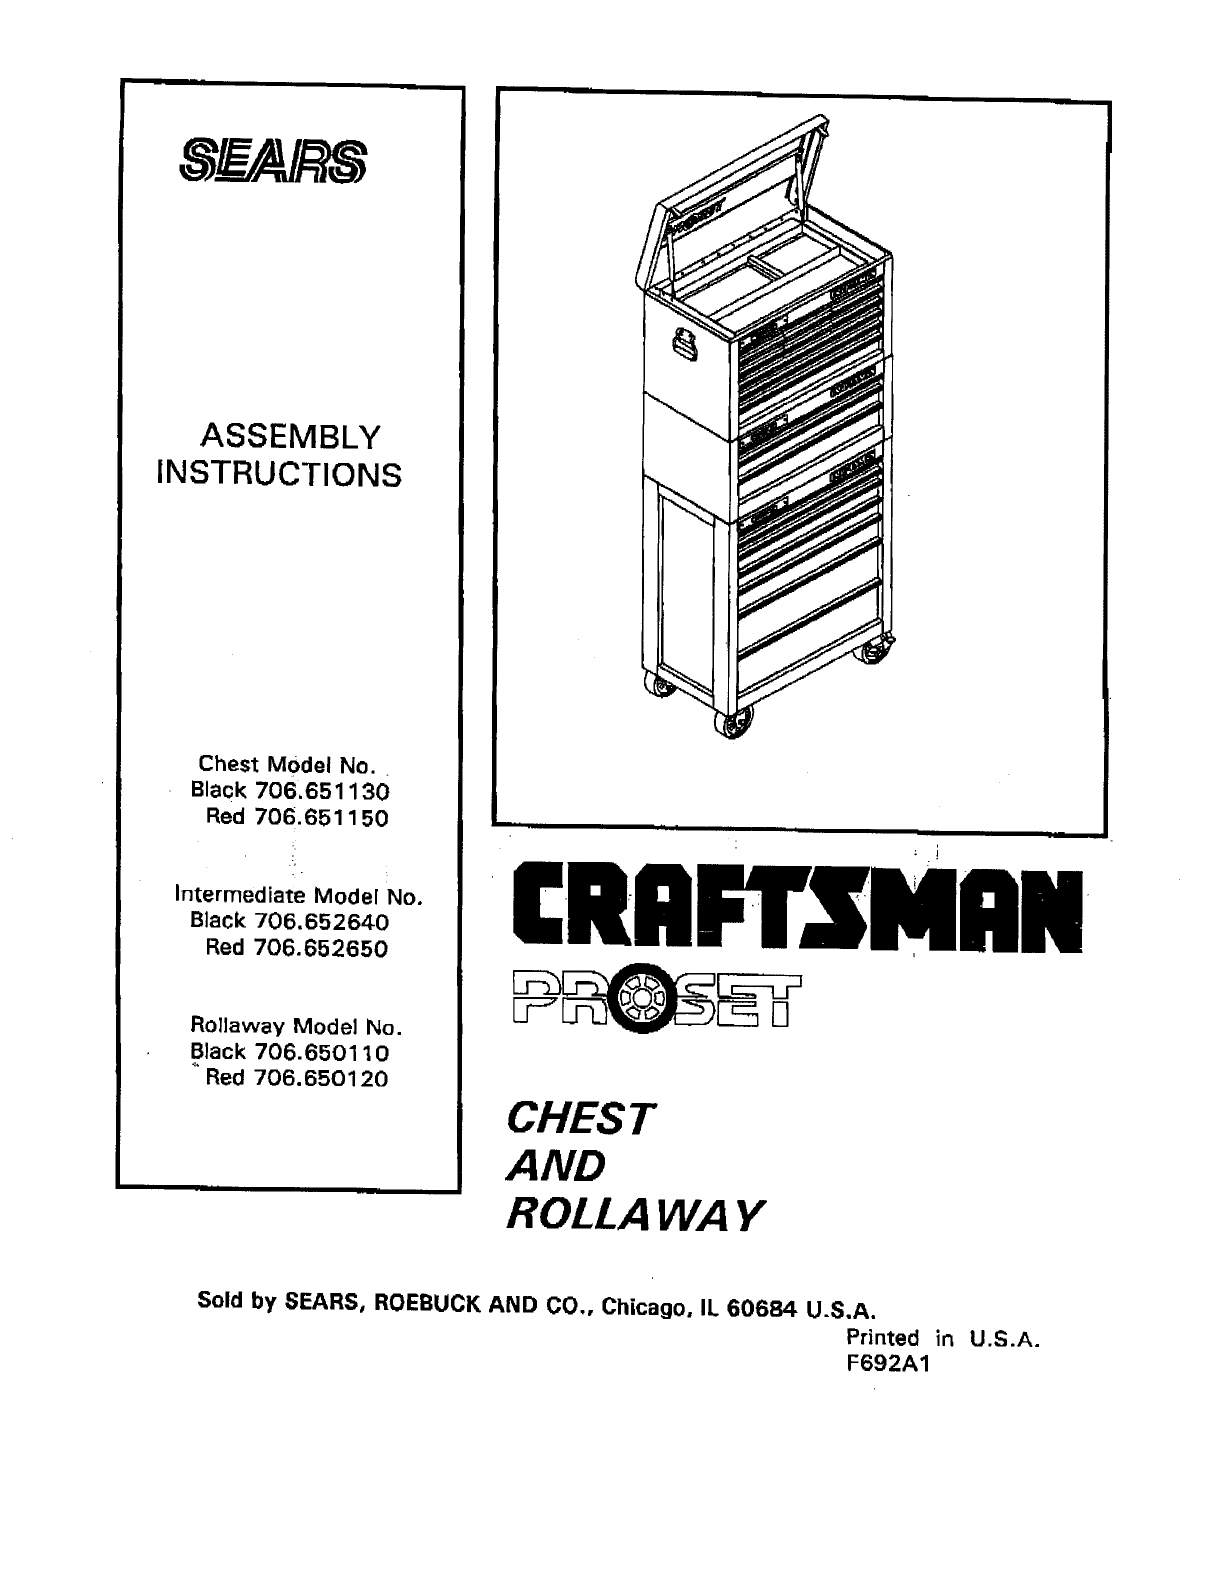 craftsman 706650110 user manual tool chest manuals and guides l0908372 rh usermanual wiki craftsman tool manual download craftsman rotary tool manual